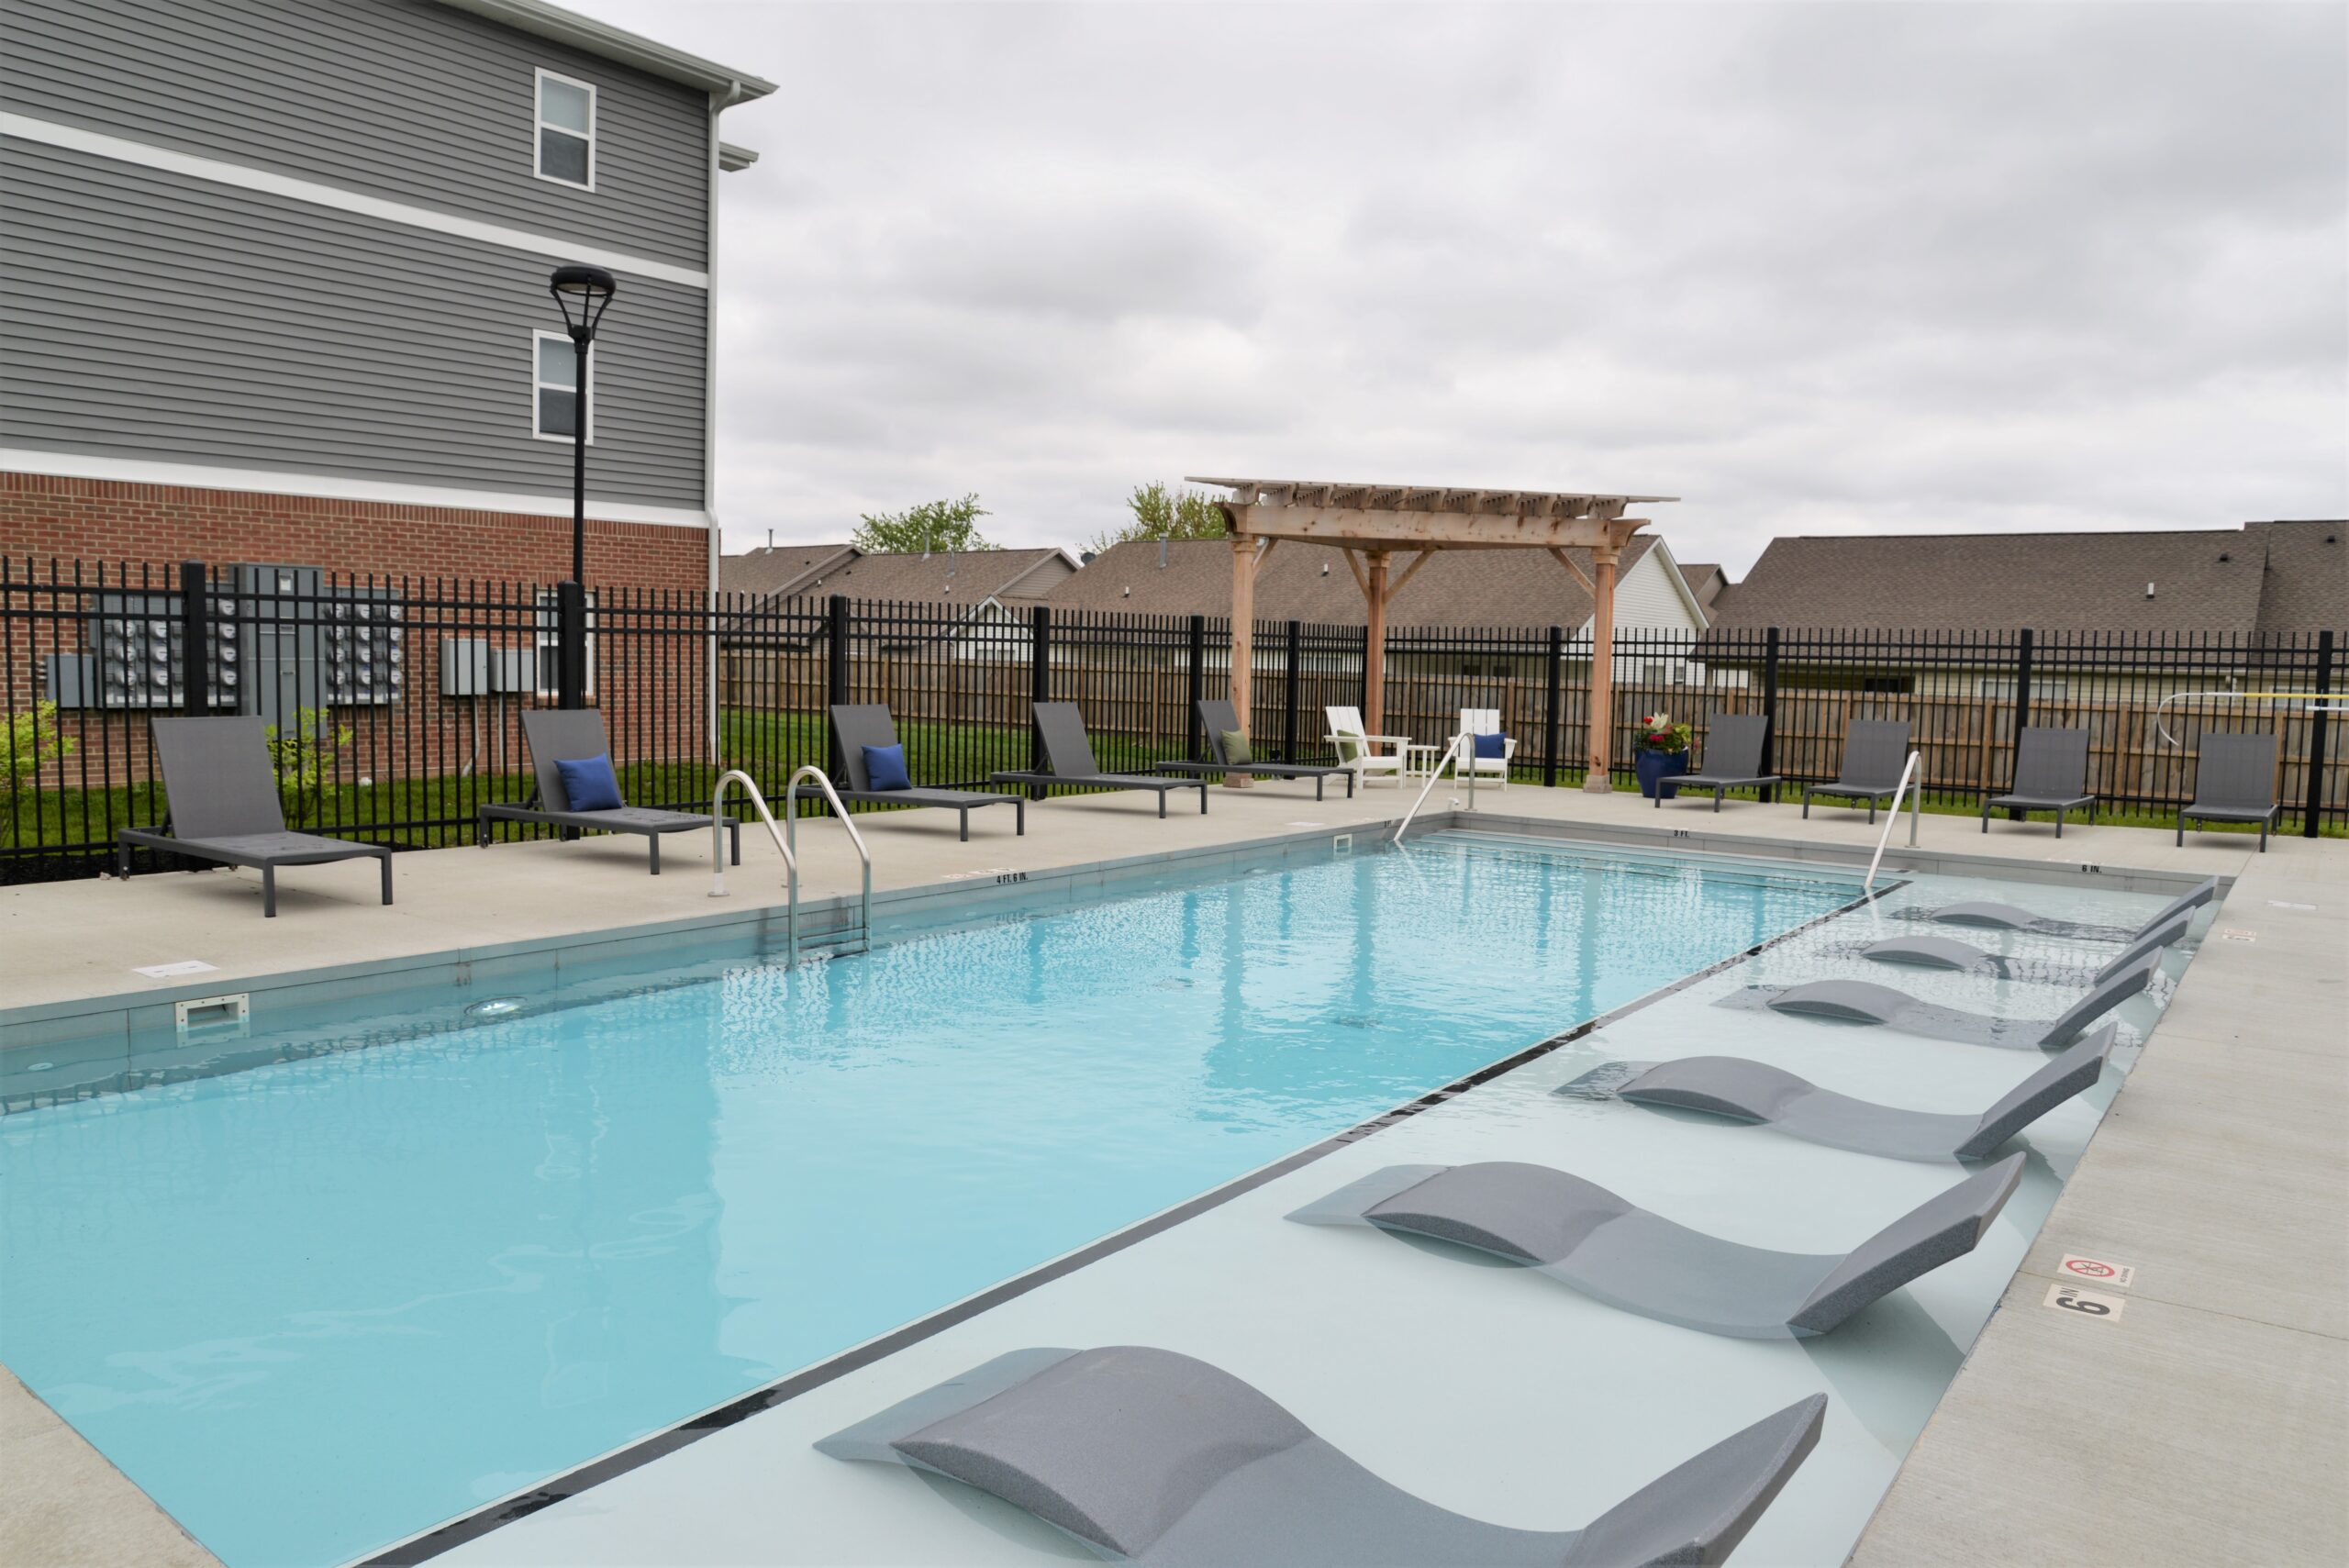 view of pool with lounge chairs